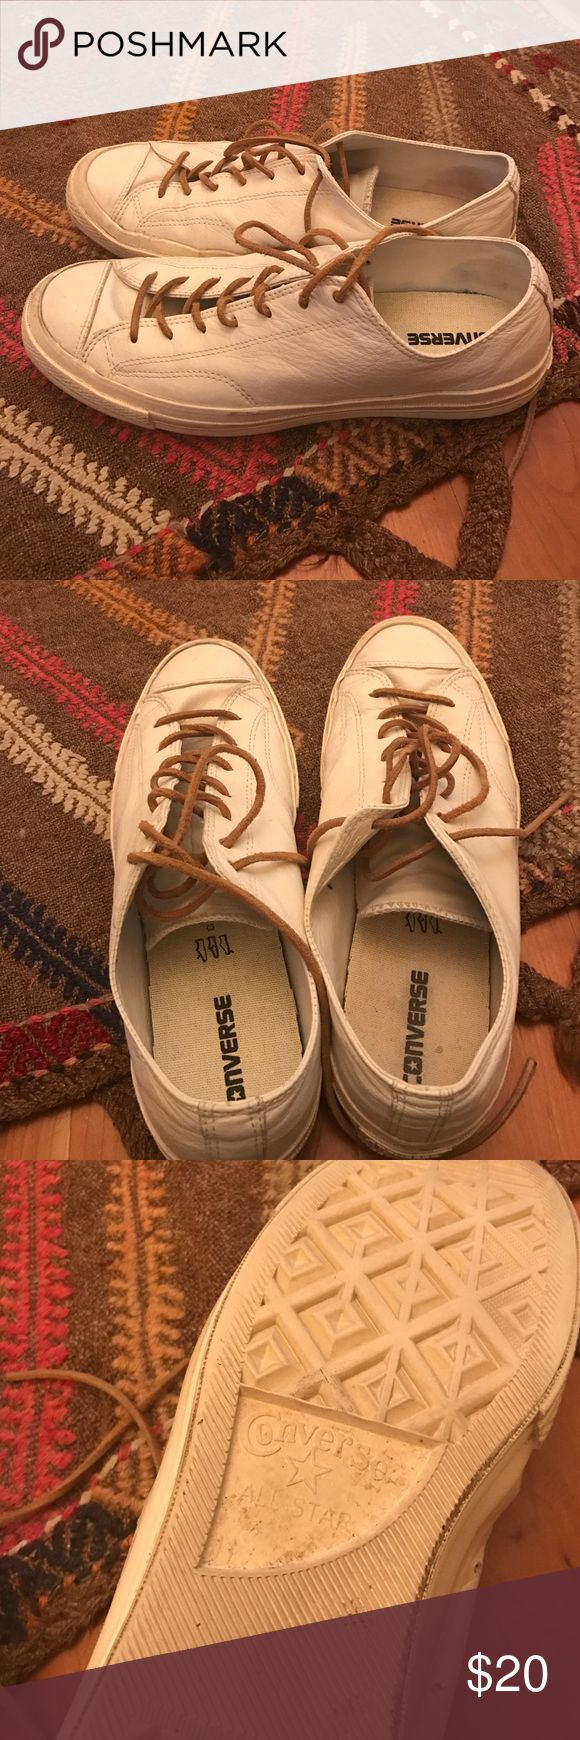 Men's converse size 11! Gently used converse for men. Size 11. Offers accepted and encouraged! Converse Shoes